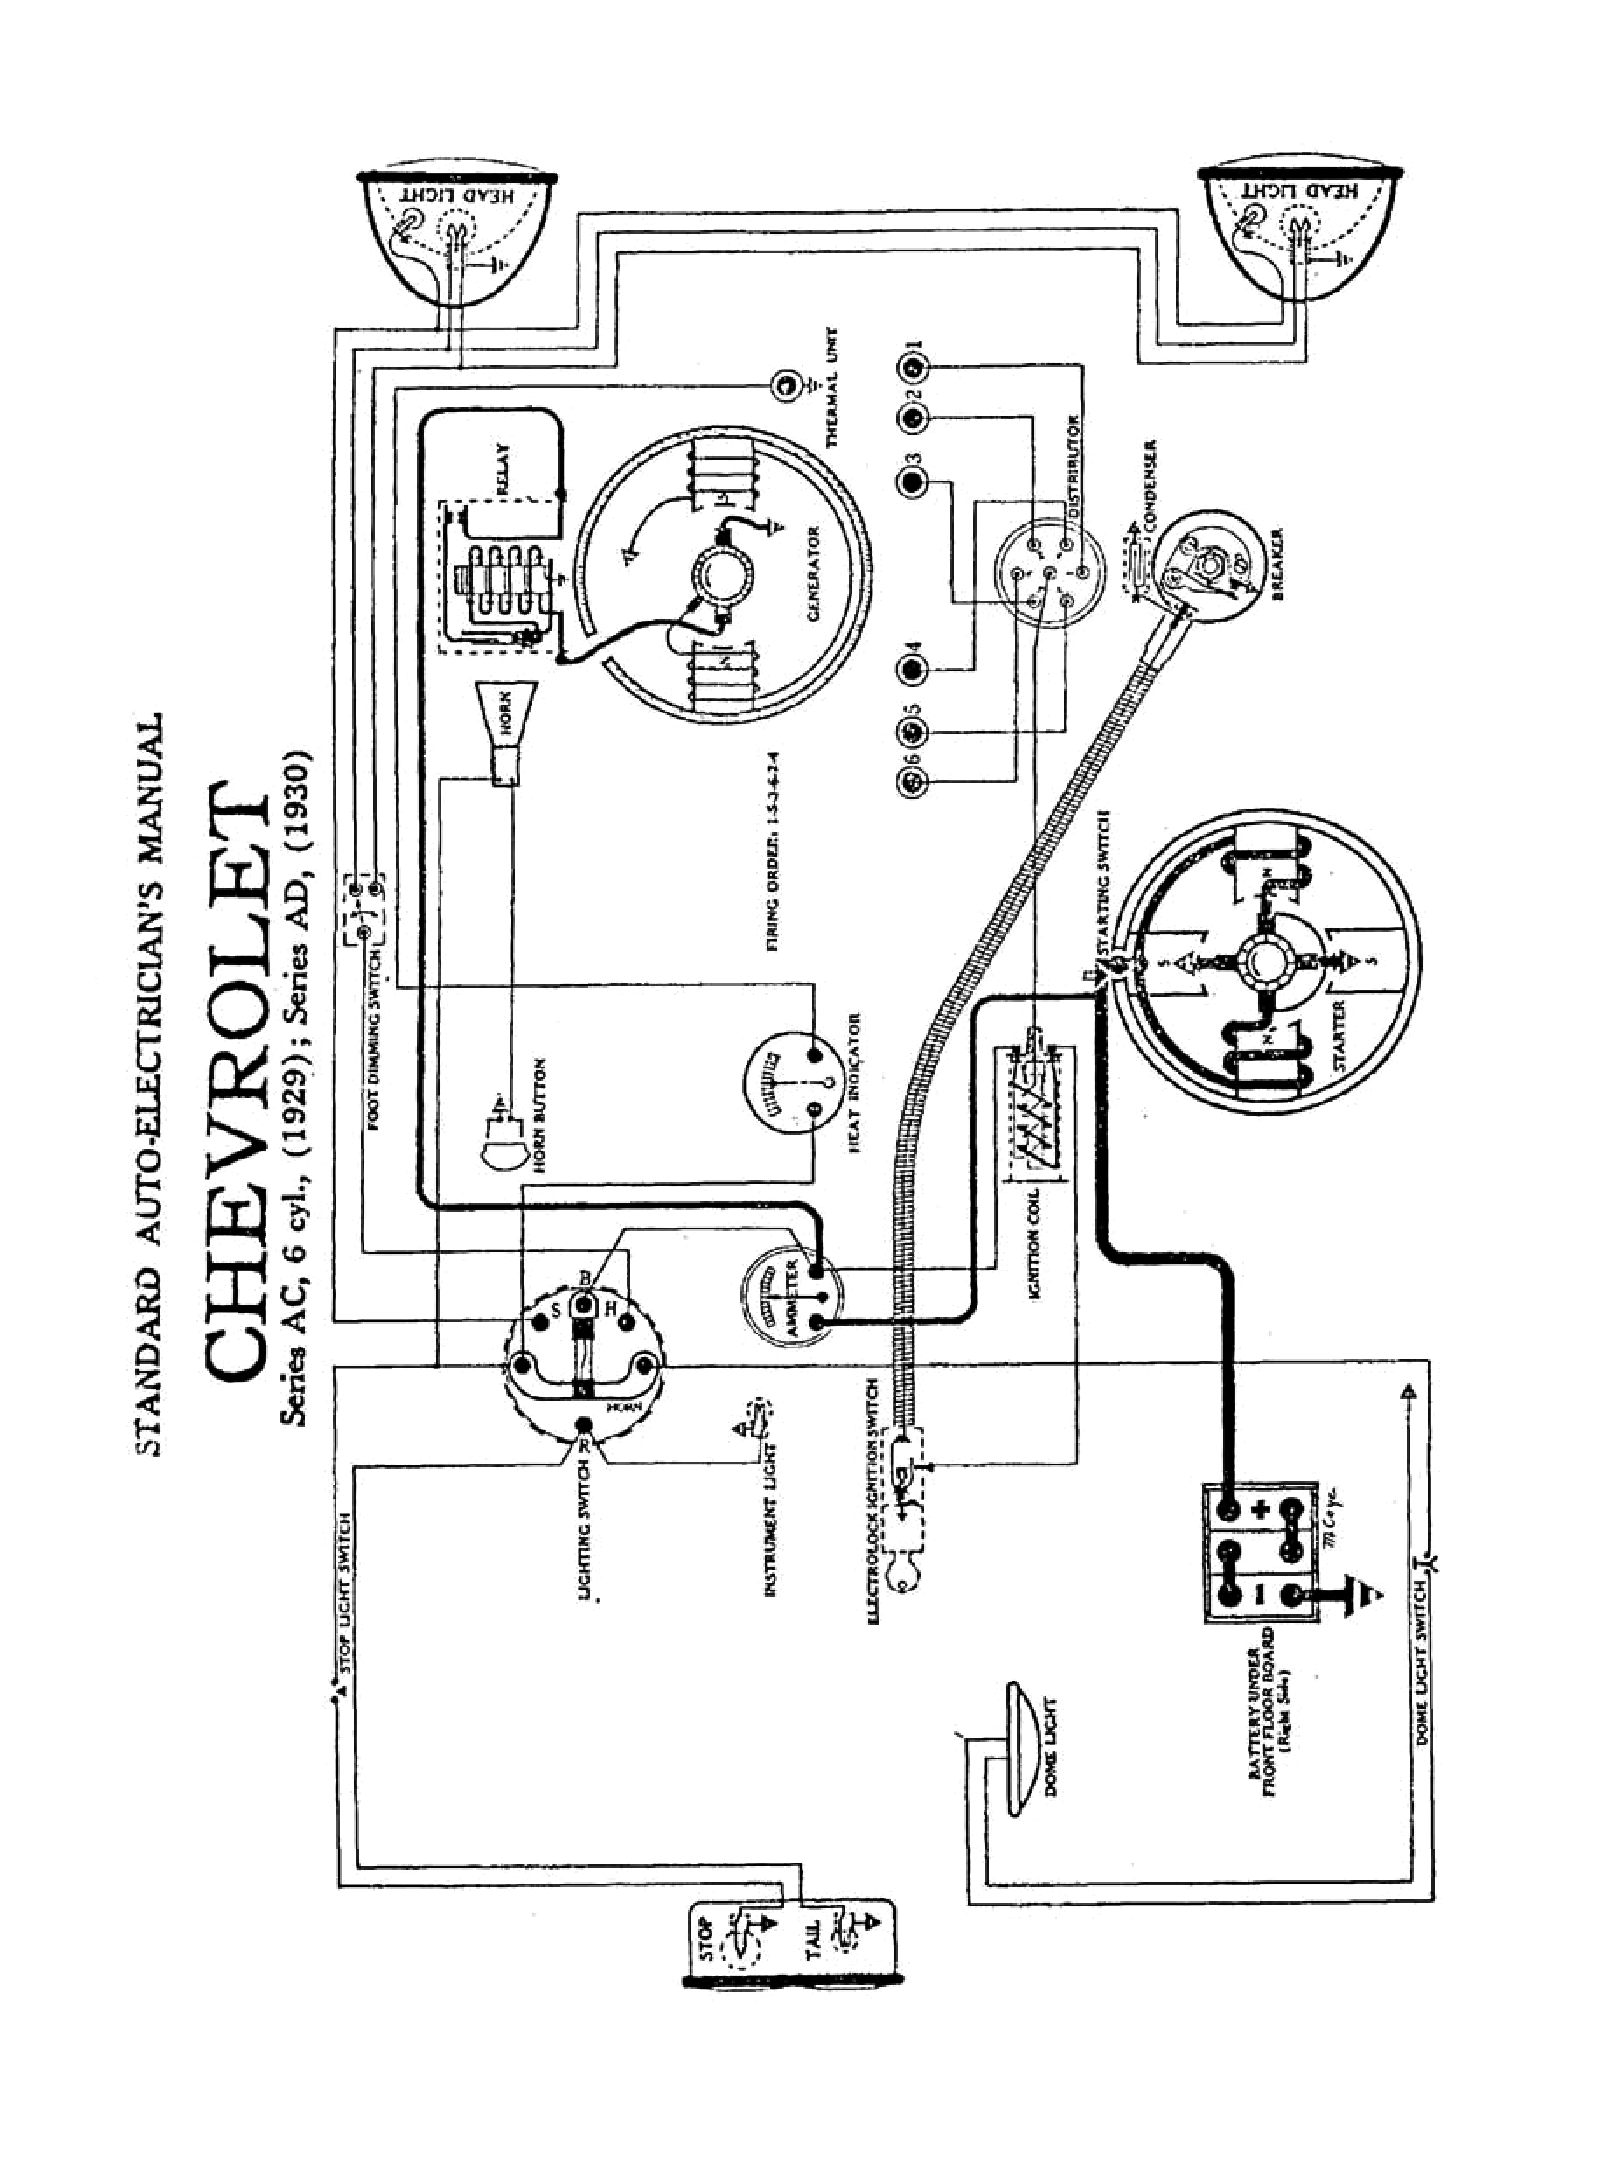 1951 Chevy Dash Panel Wiring Diagram Reveolution Of 1956 Diagrams Rh Oldcarmanualproject Com Ford Convertible Interior